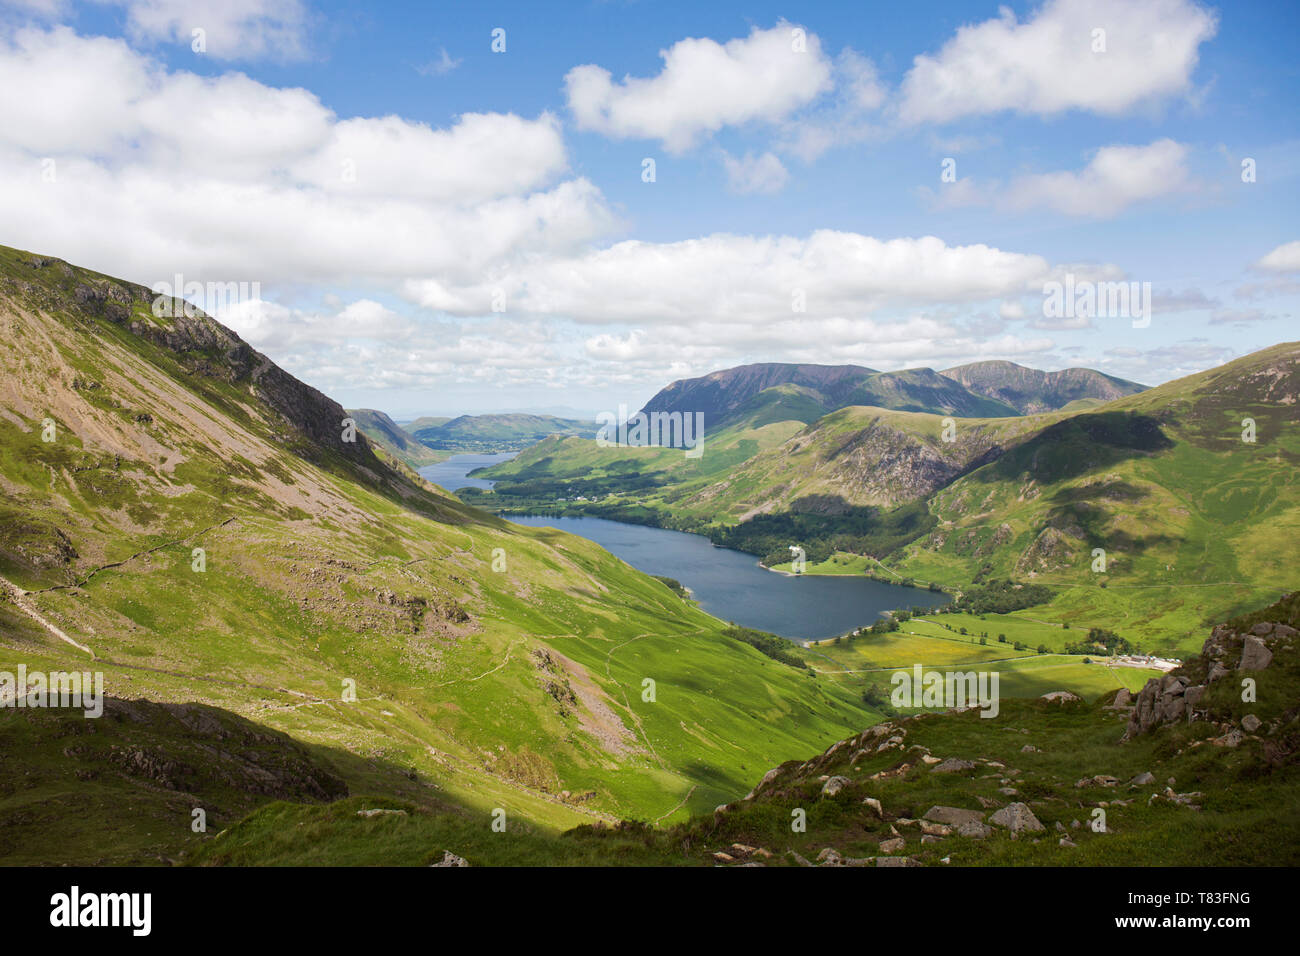 Lake District National Park, Cumbria, England. View over Buttermere and distant Crummock Water from the western slopes of Haystacks. - Stock Image